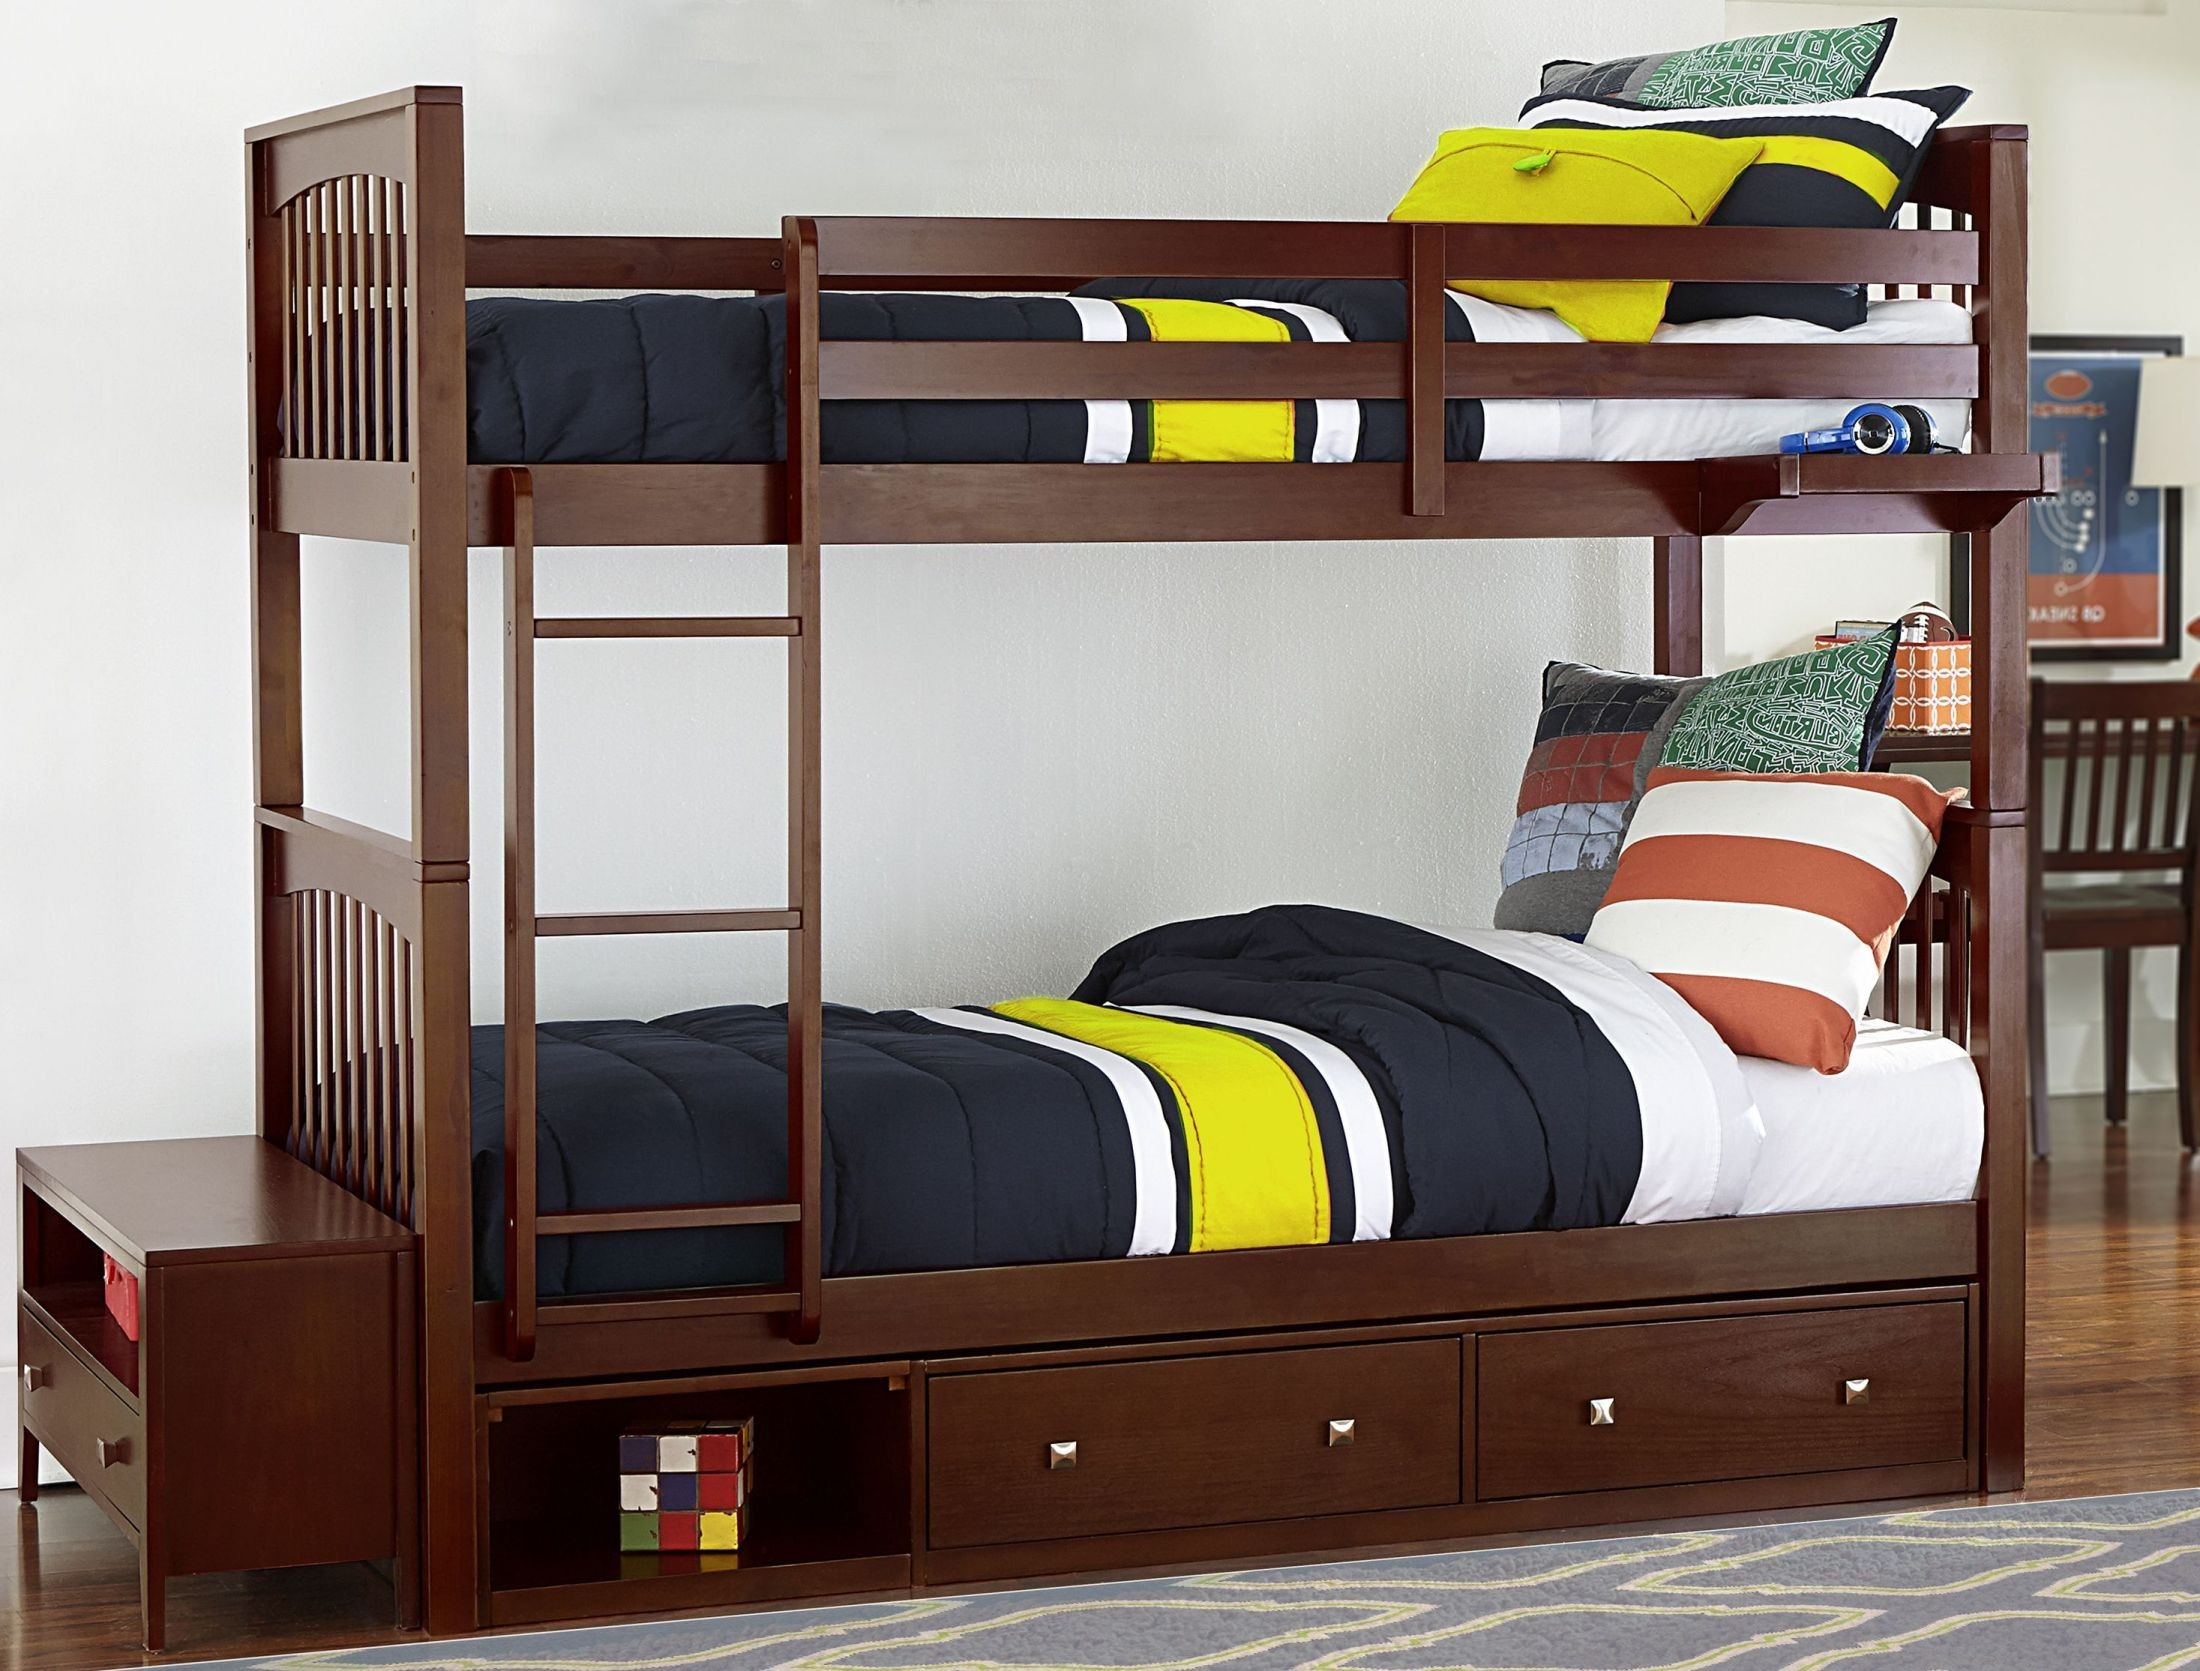 Pulse cherry youth bunk bedroom set with storage from ne kids coleman furniture for Youth storage bedroom furniture